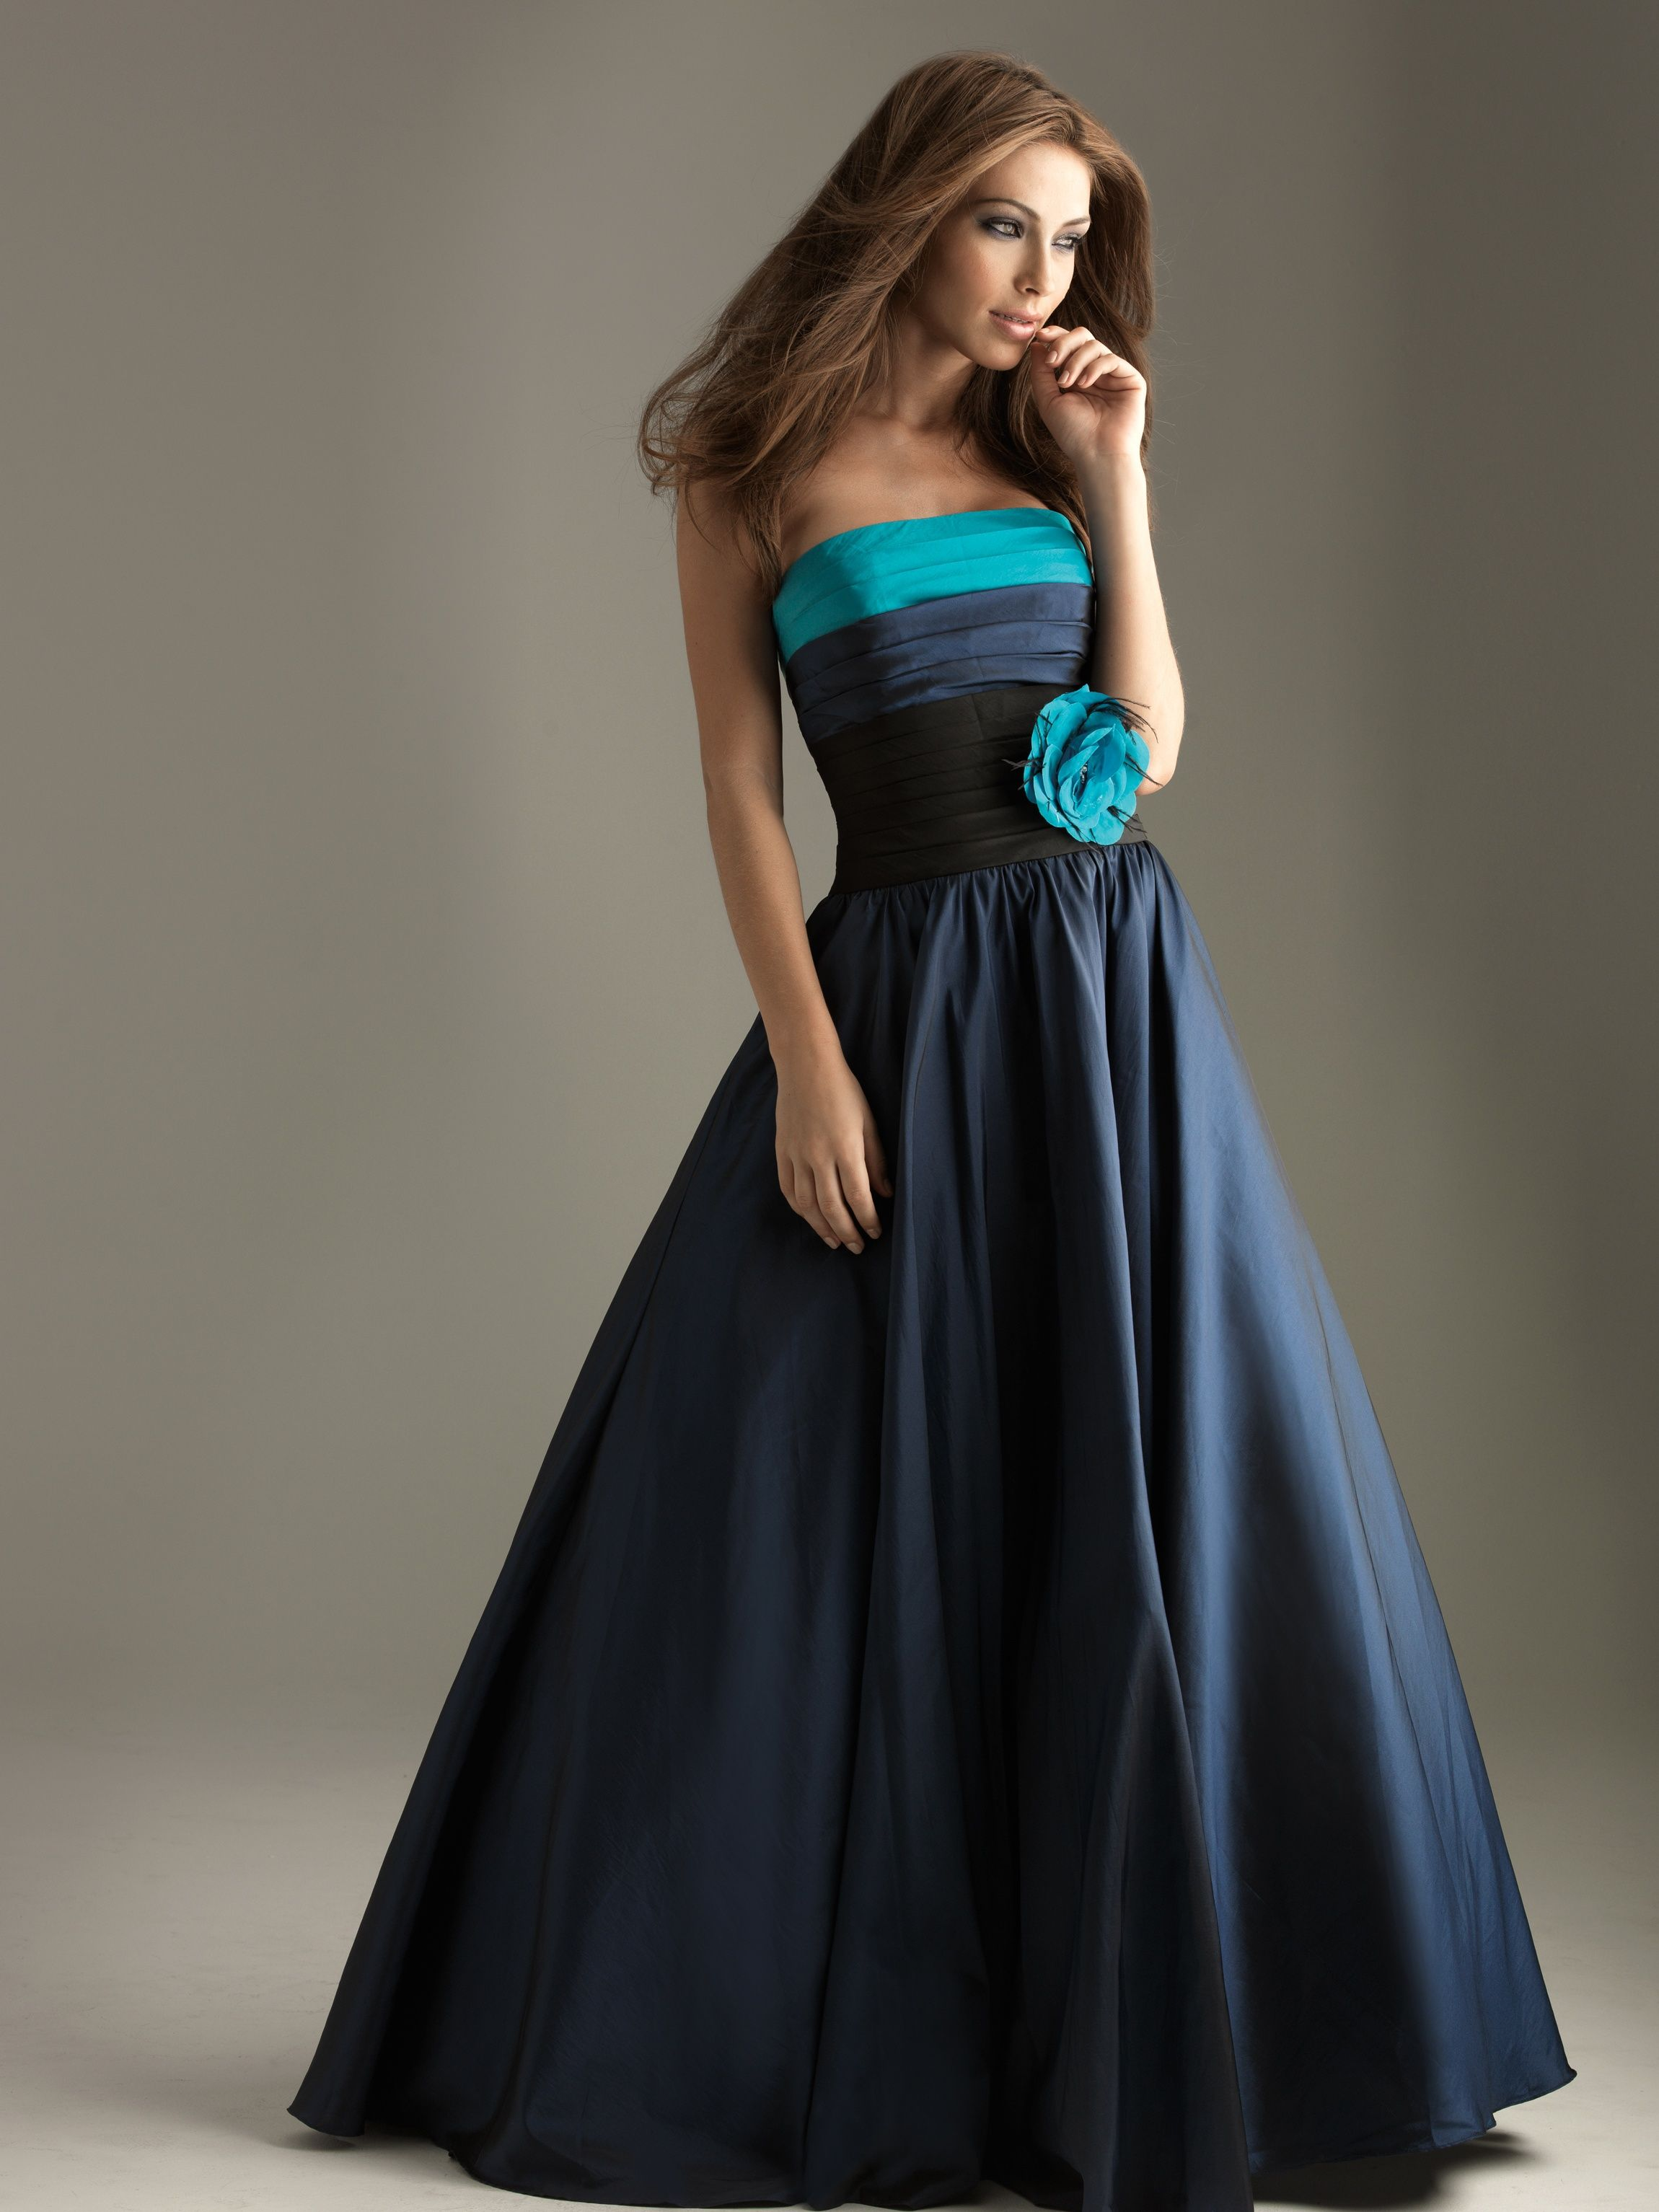 Prom dress prom dresses prom dress formal pinterest dress prom